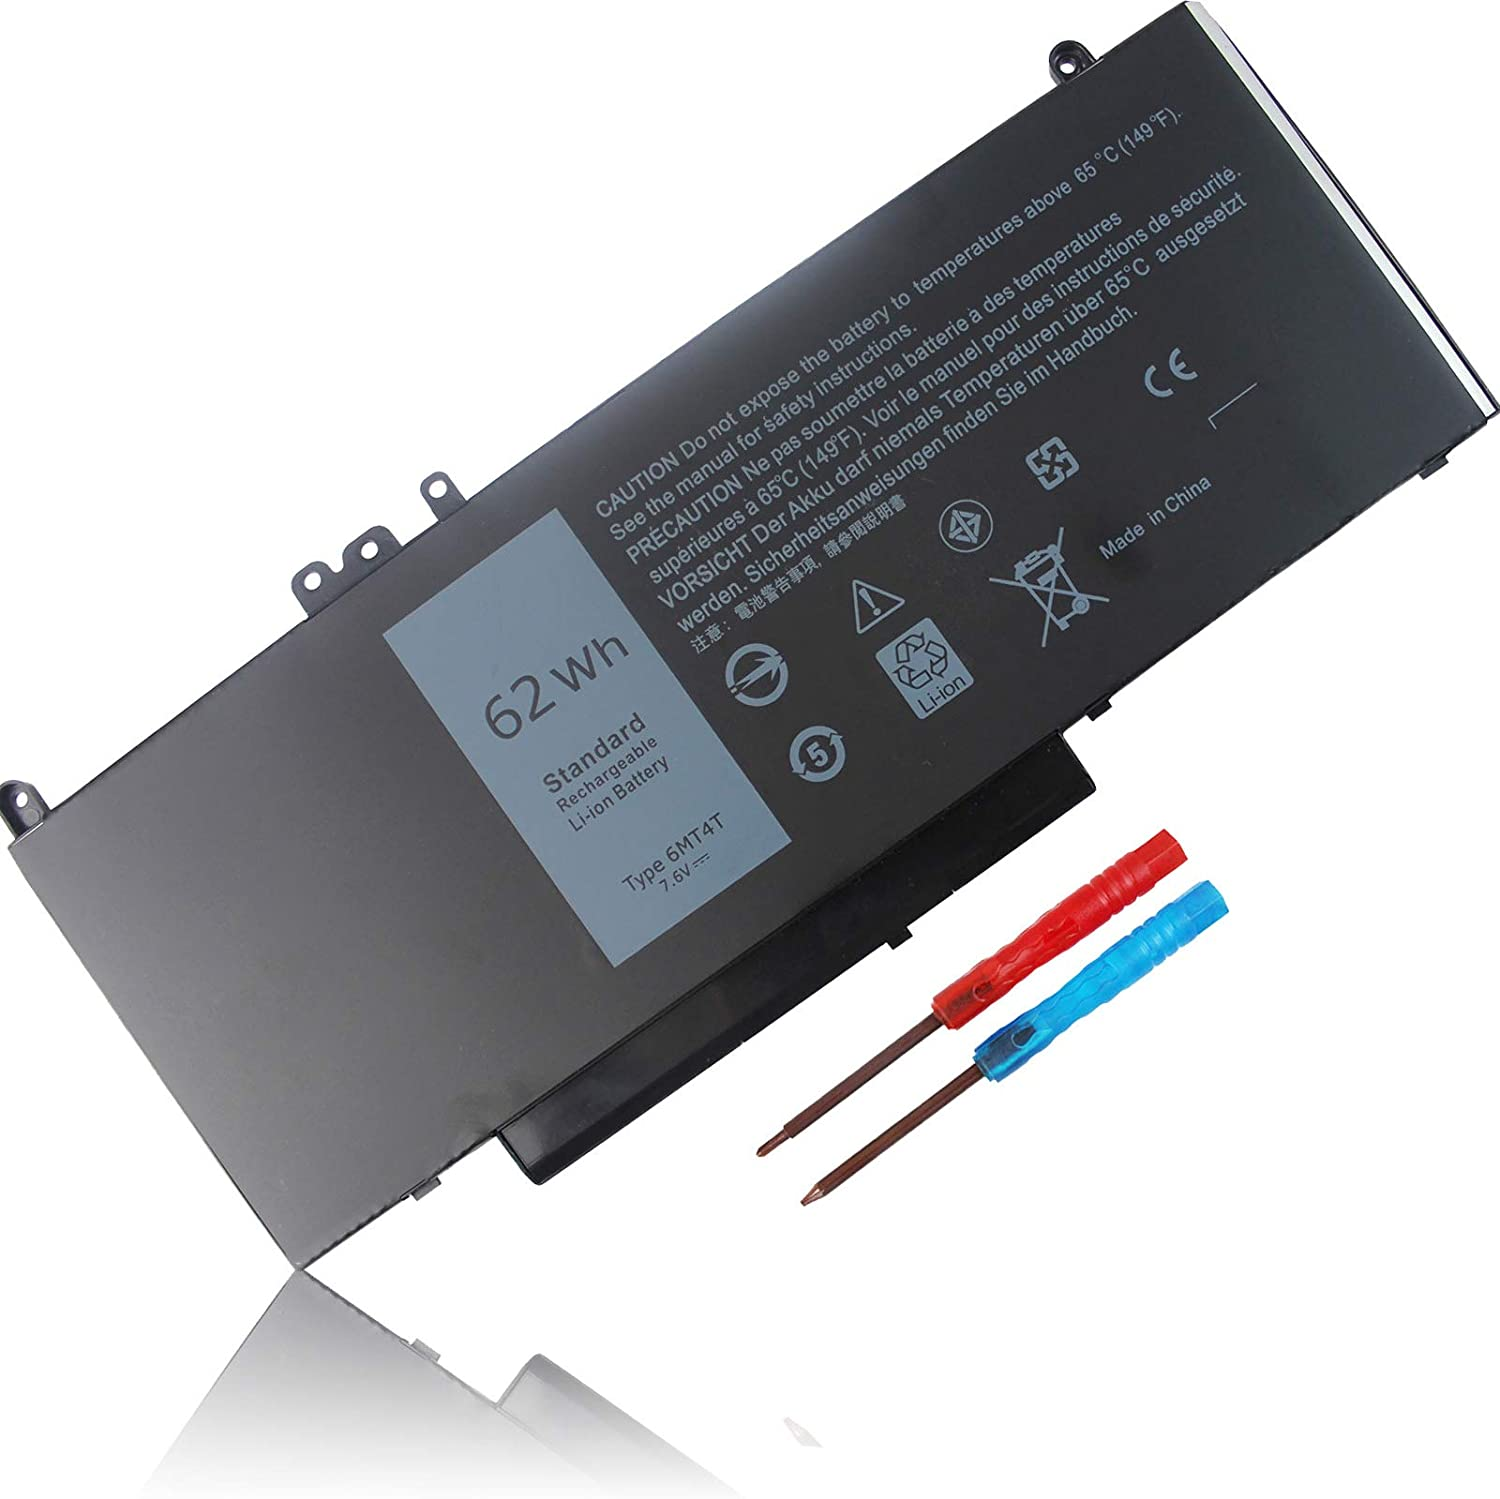 6MT4T Battery 62WH Replacement for Dell Latitude E5470 E5570 14 5470 E5470 15 5570 E5570 15.6 inch Precision 3510 7V69Y TXF9M 79VRK 07V69Y 0HK6DV 079VRK 0TXF9M 451-BBUN 451-BBTW 0C1P4